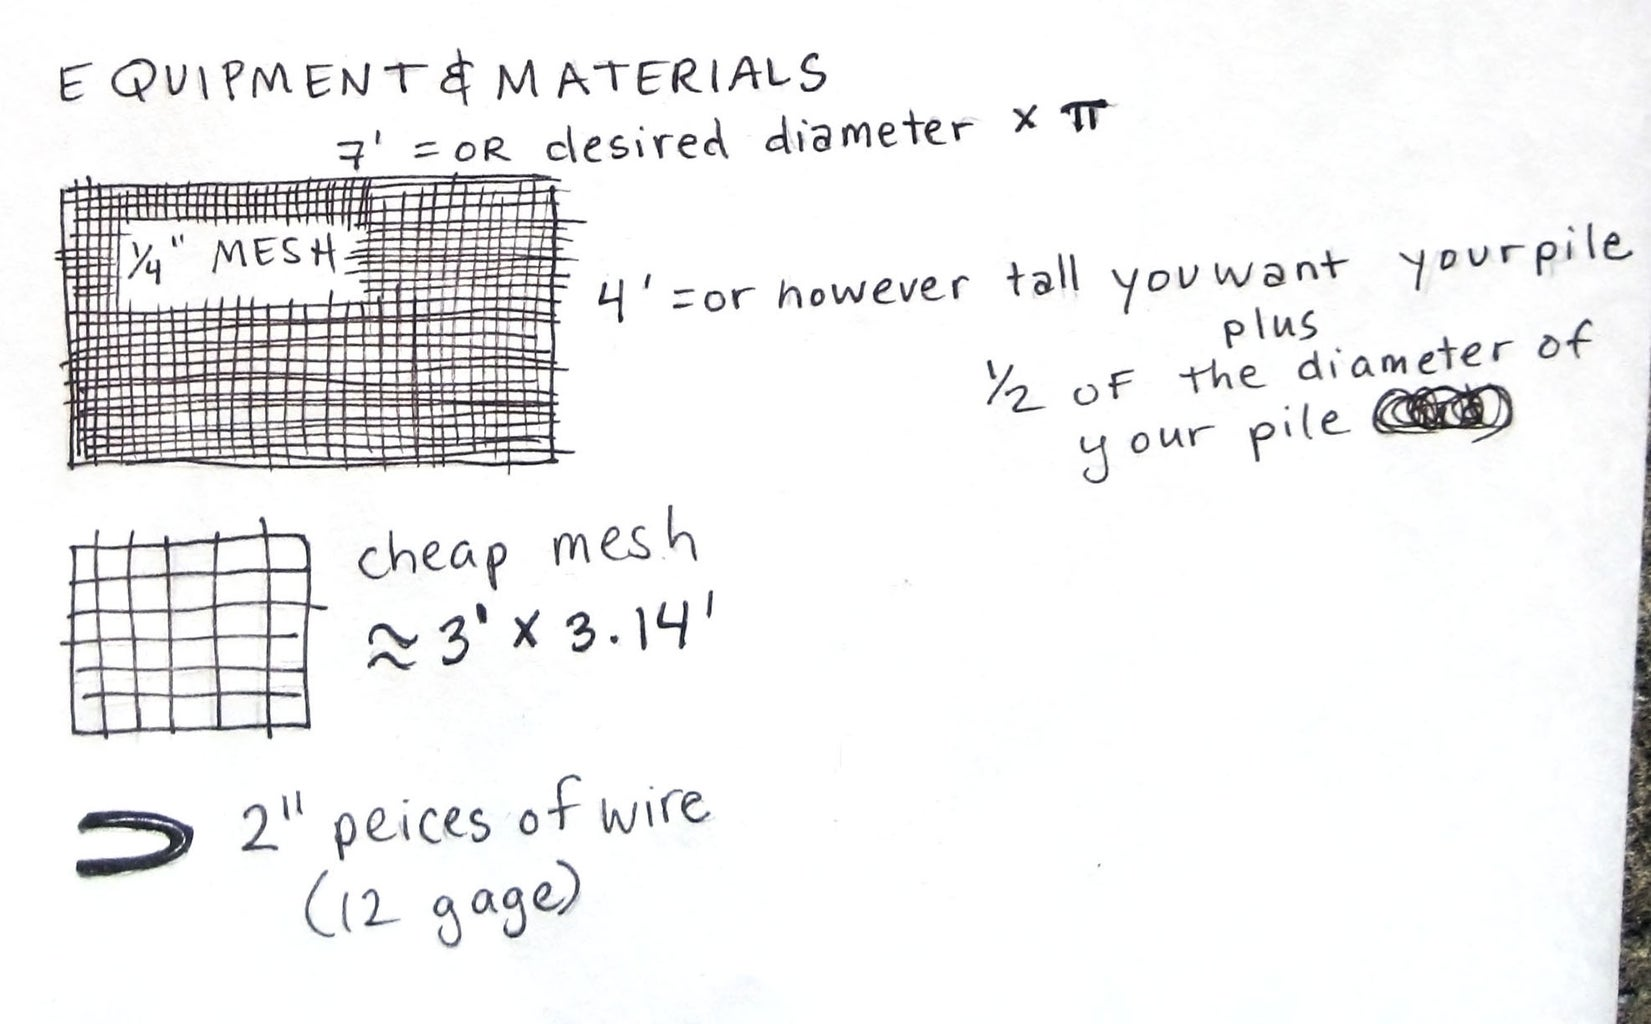 Equipment and Materials